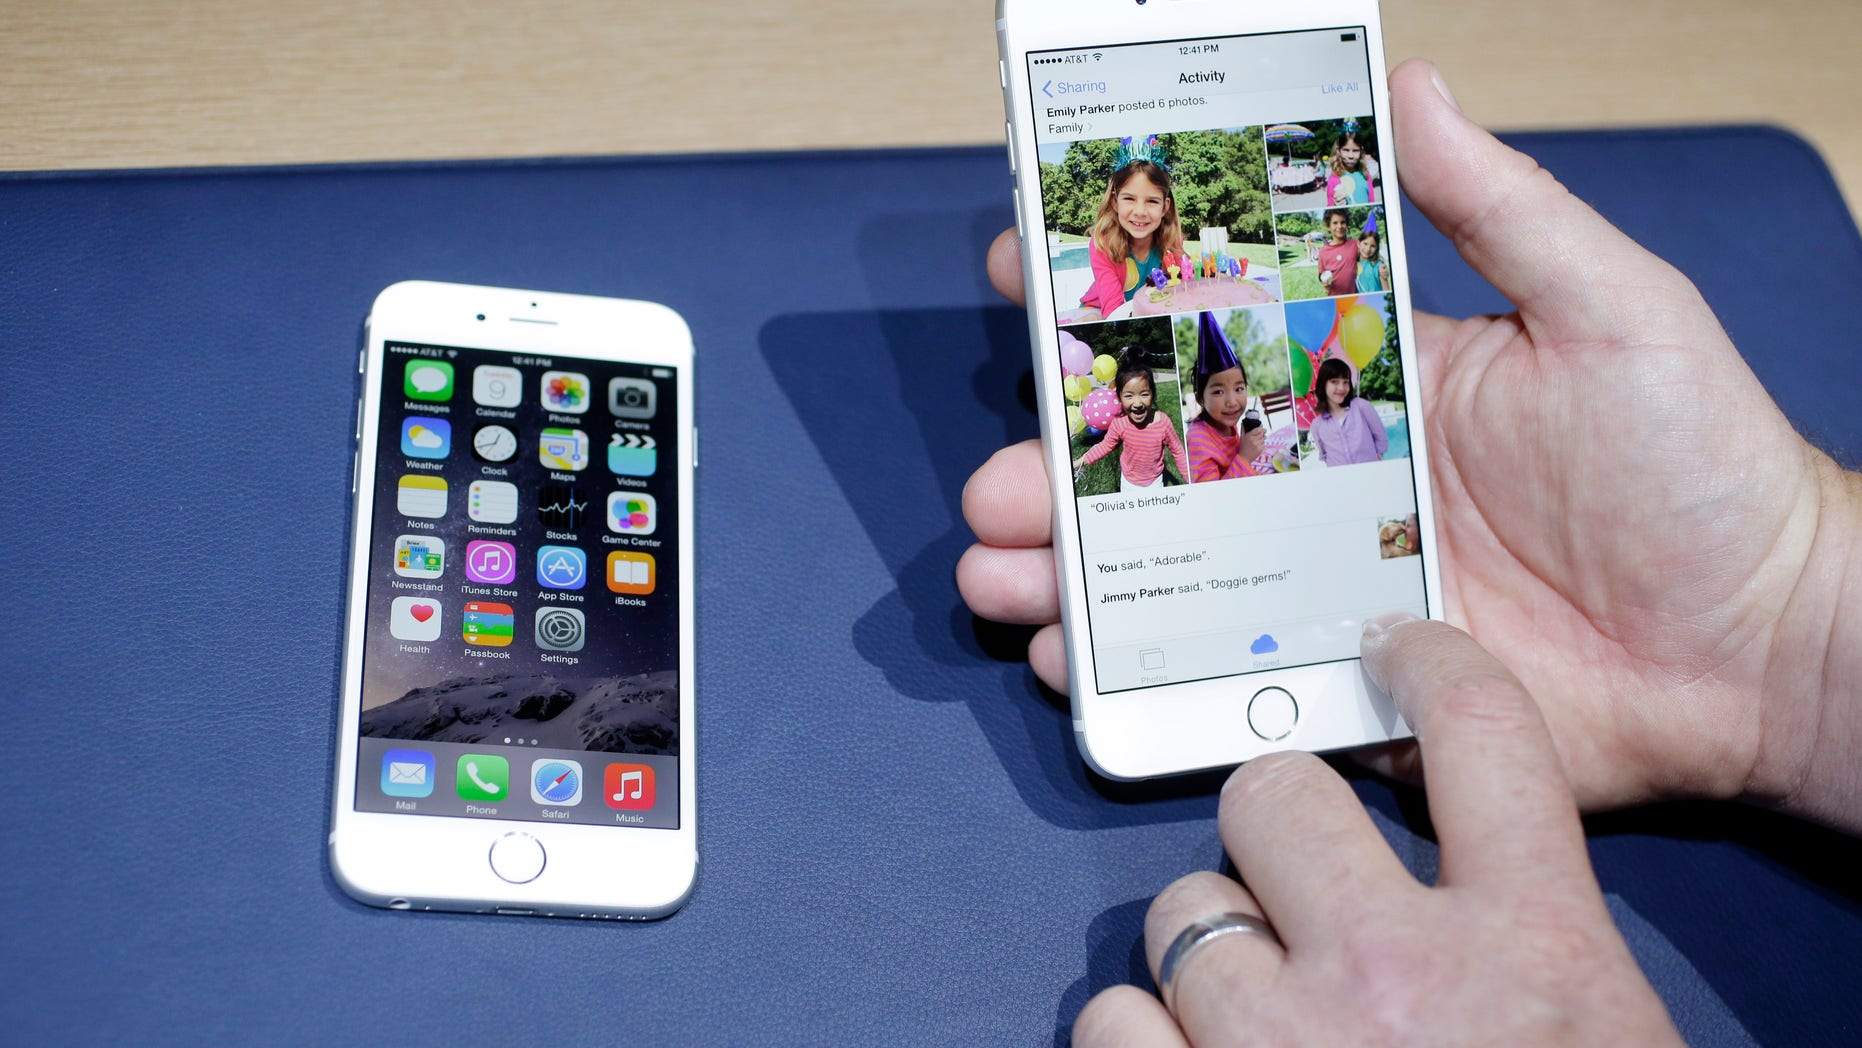 FILE - This Sept. 9, 2014 file photo shows the iPhone 6, at left, and iPhone 6 plus during a new product release in Cupertino, Calif. Selling your old phone online or to companies that buy back used models can often offer a better return than your wireless provider. (AP Photo/Marcio Jose Sanchez, File)